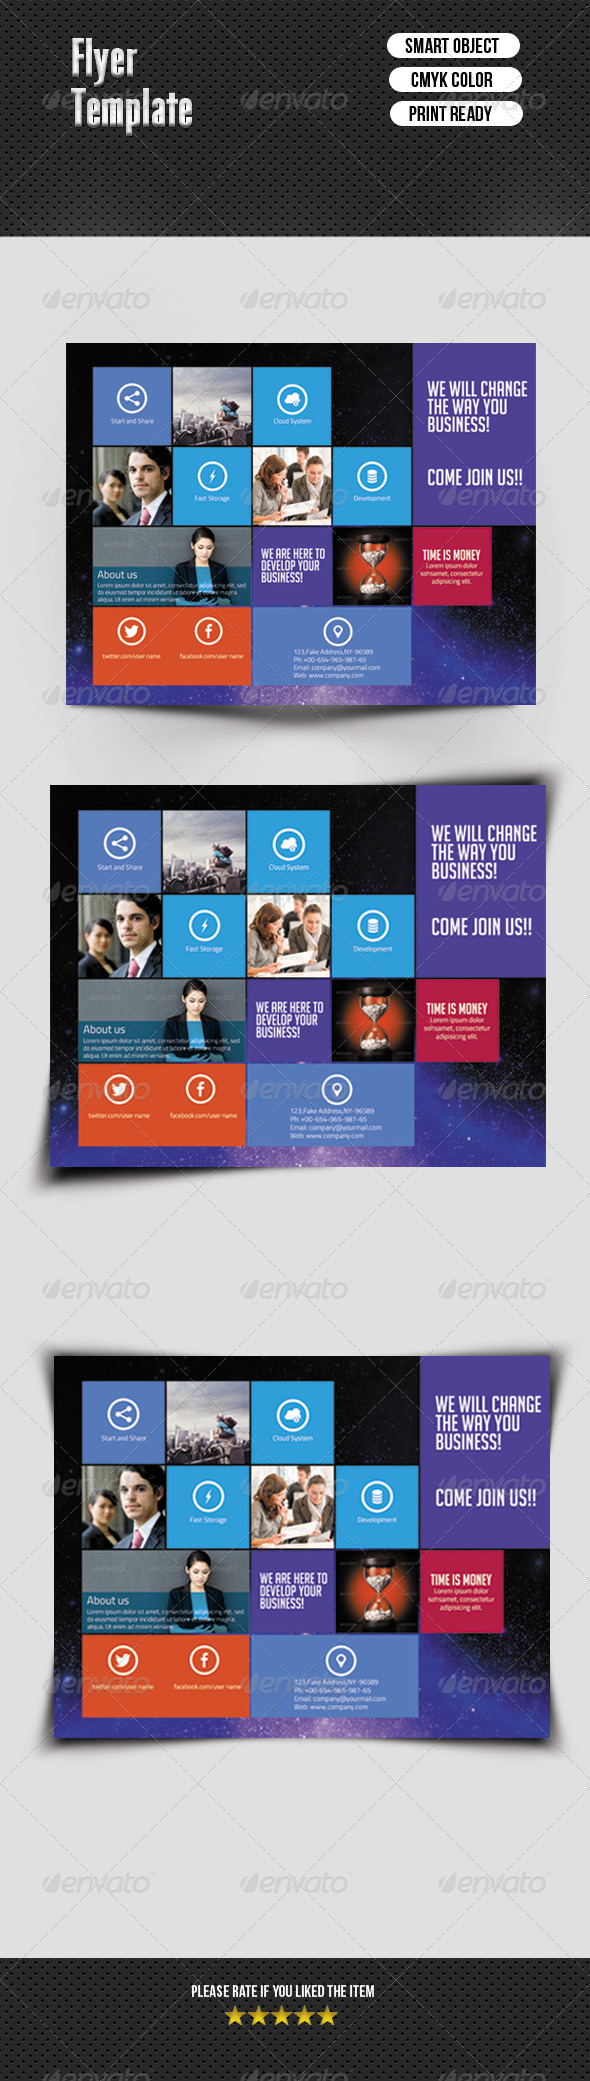 Metro Style Flyer Template - Corporate Flyers